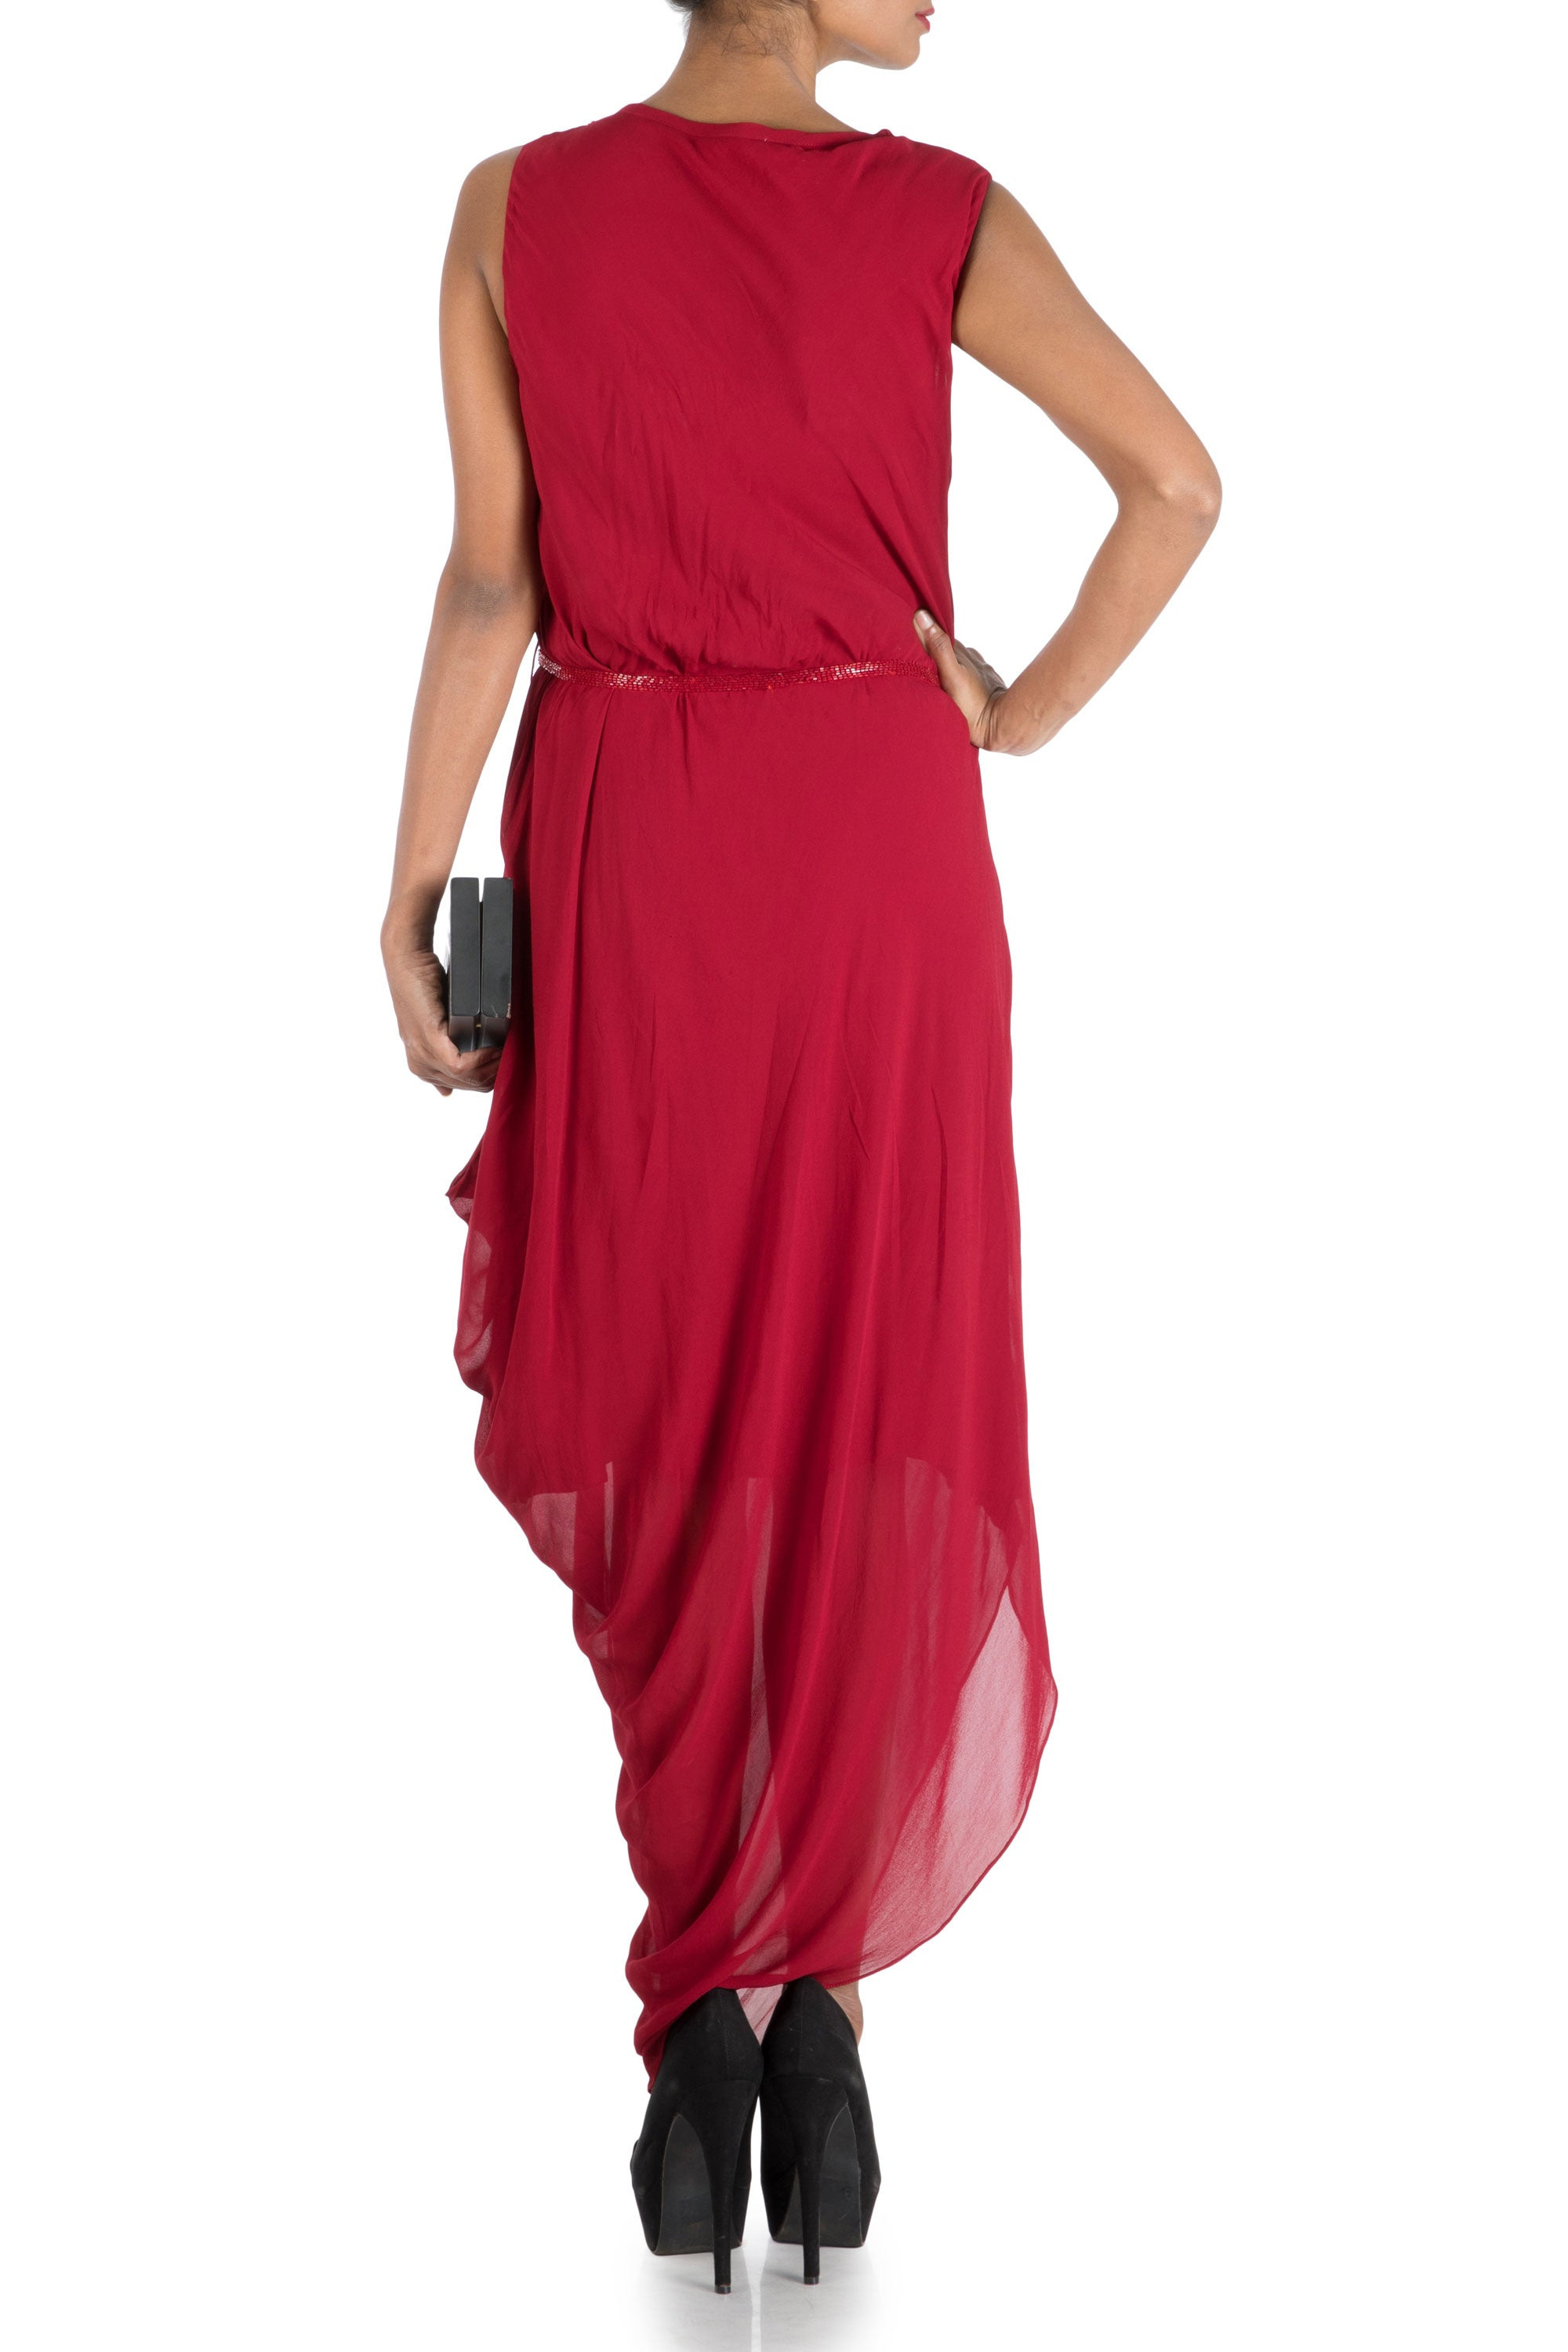 Wine Drape Dress With Embroidered Belt Back